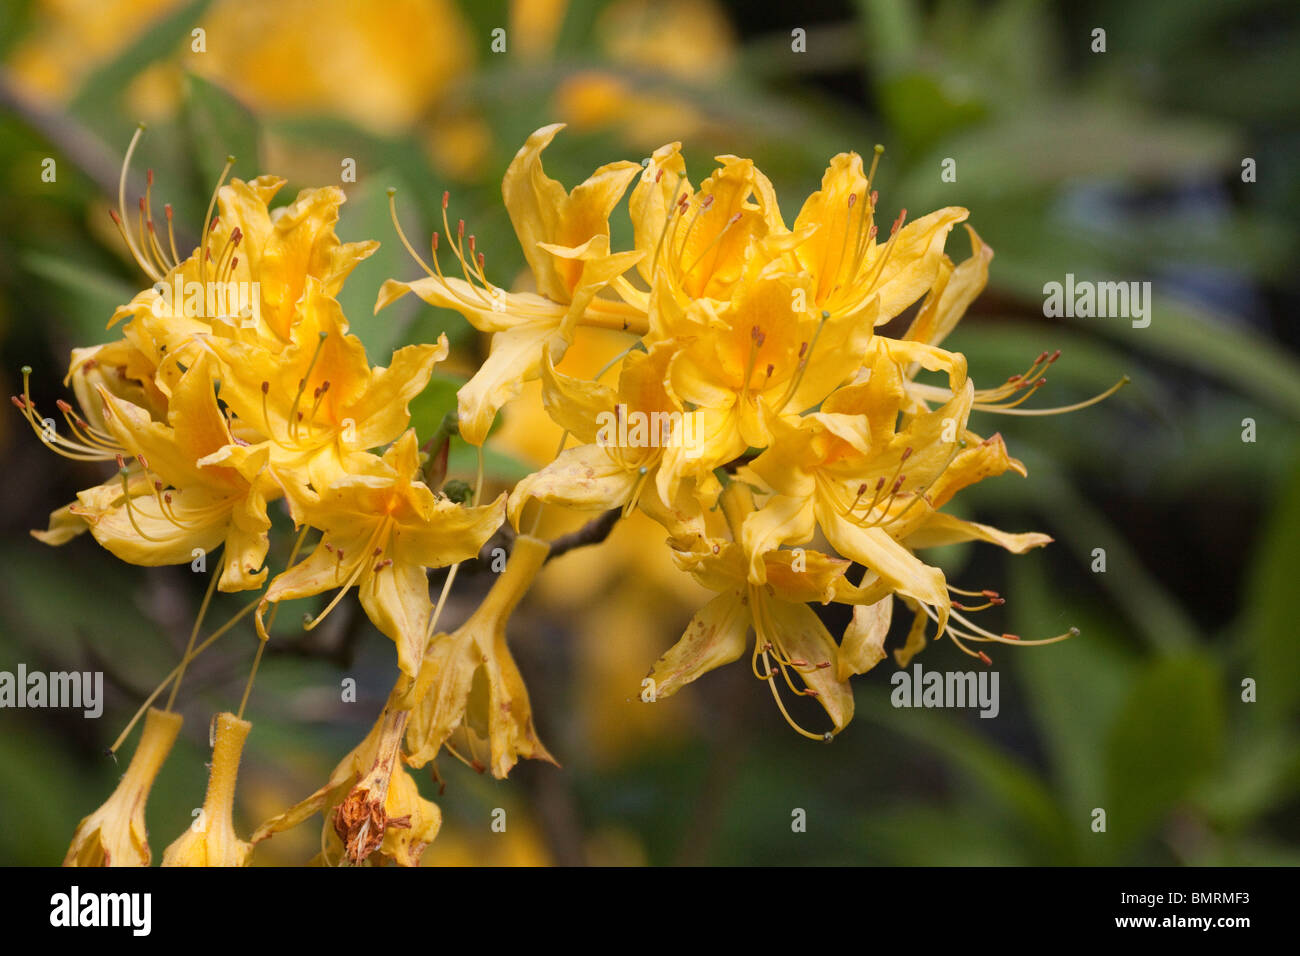 Yellow rhododendron flowers in may horizontal 104793 rhododendrons yellow rhododendron flowers in may horizontal 104793 rhododendrons mightylinksfo